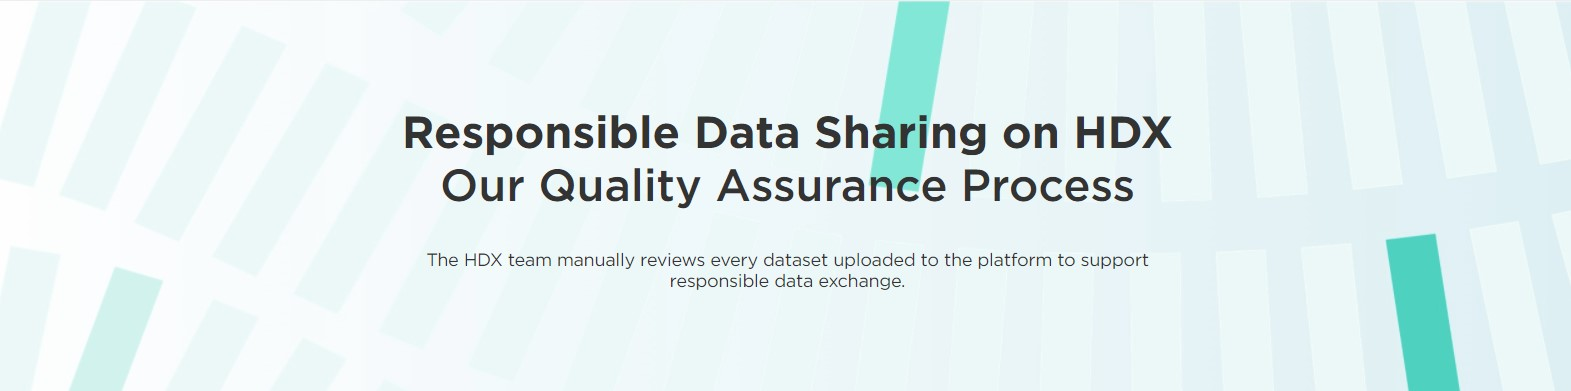 Responsible Data Sharing on HDX banner